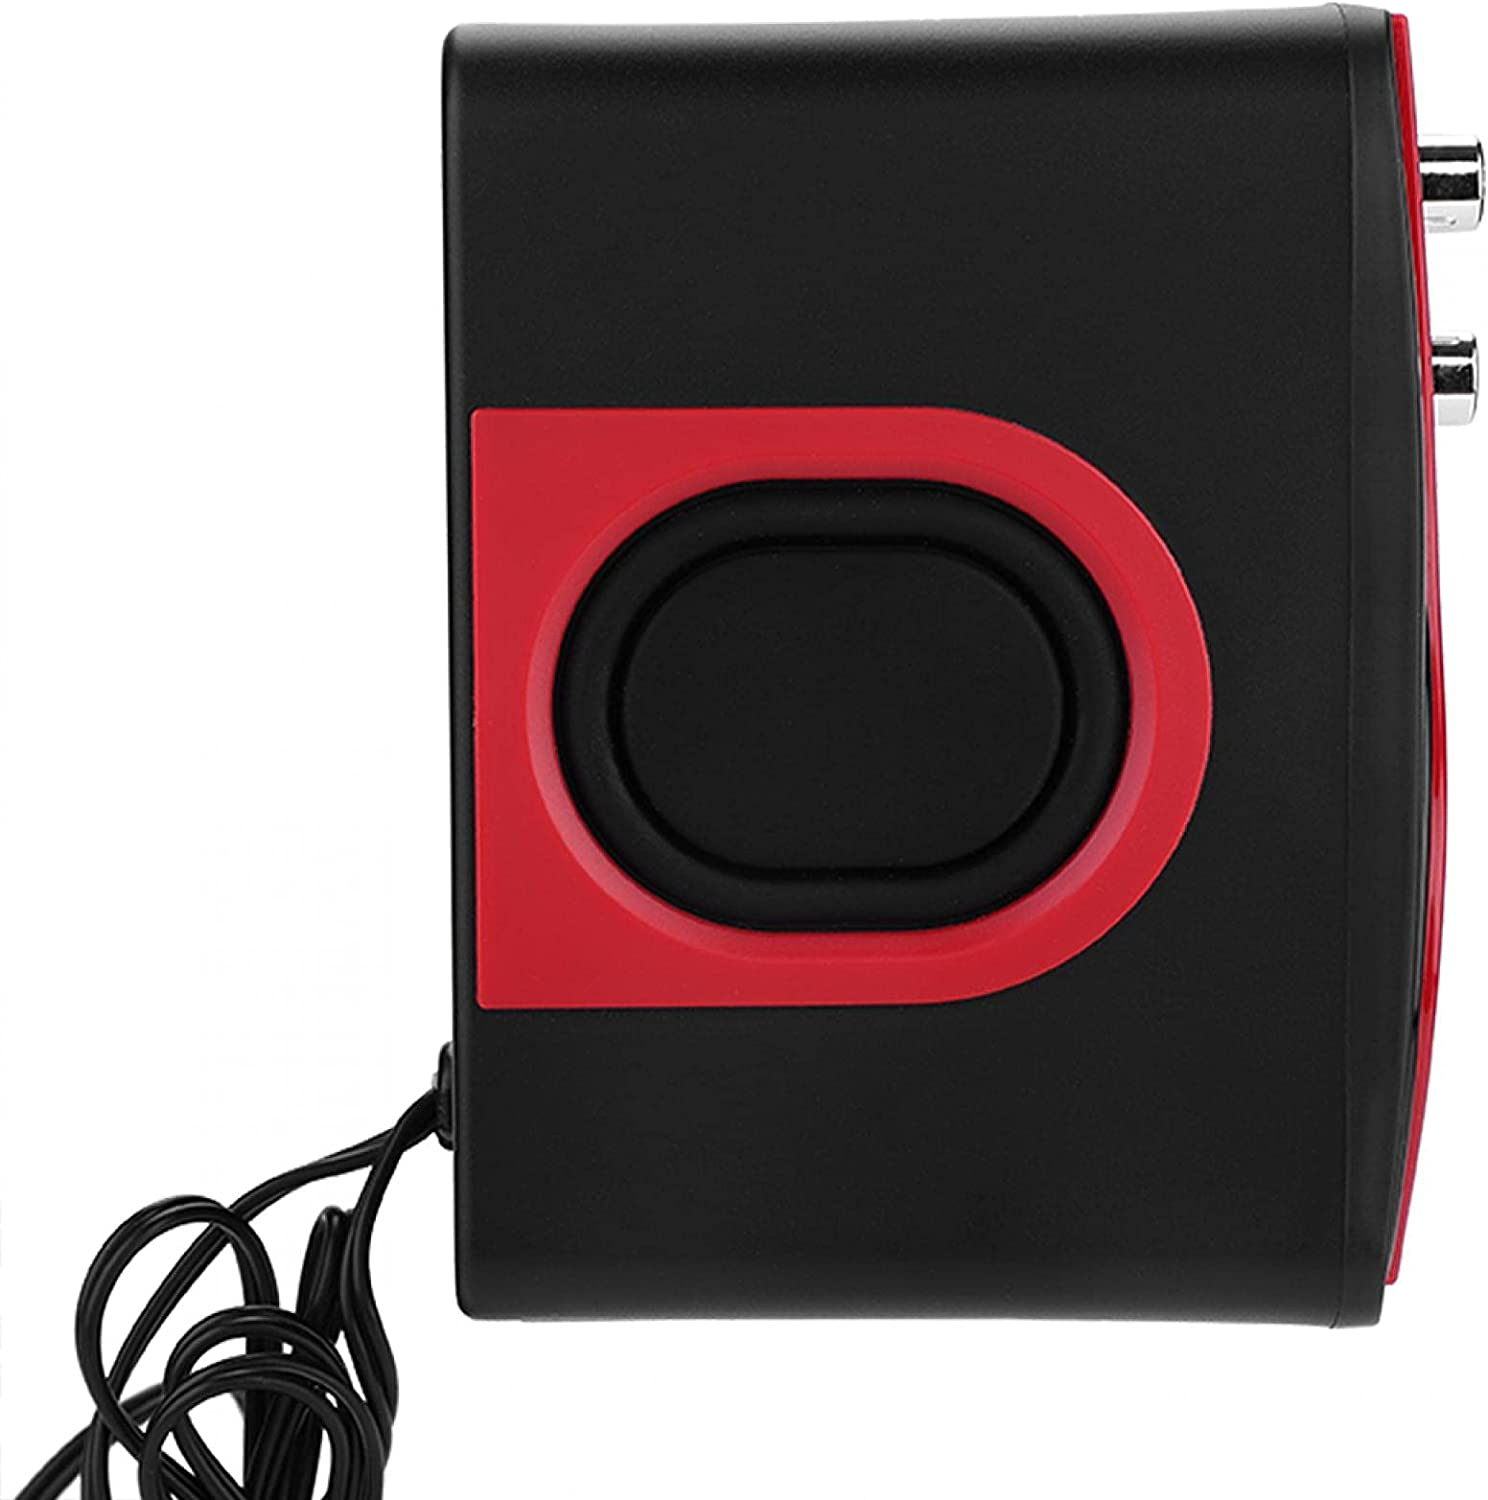 Astibym Speaker Surrounding Sound Max 60% OFF Computer Subwoofe Color Steady Finally popular brand